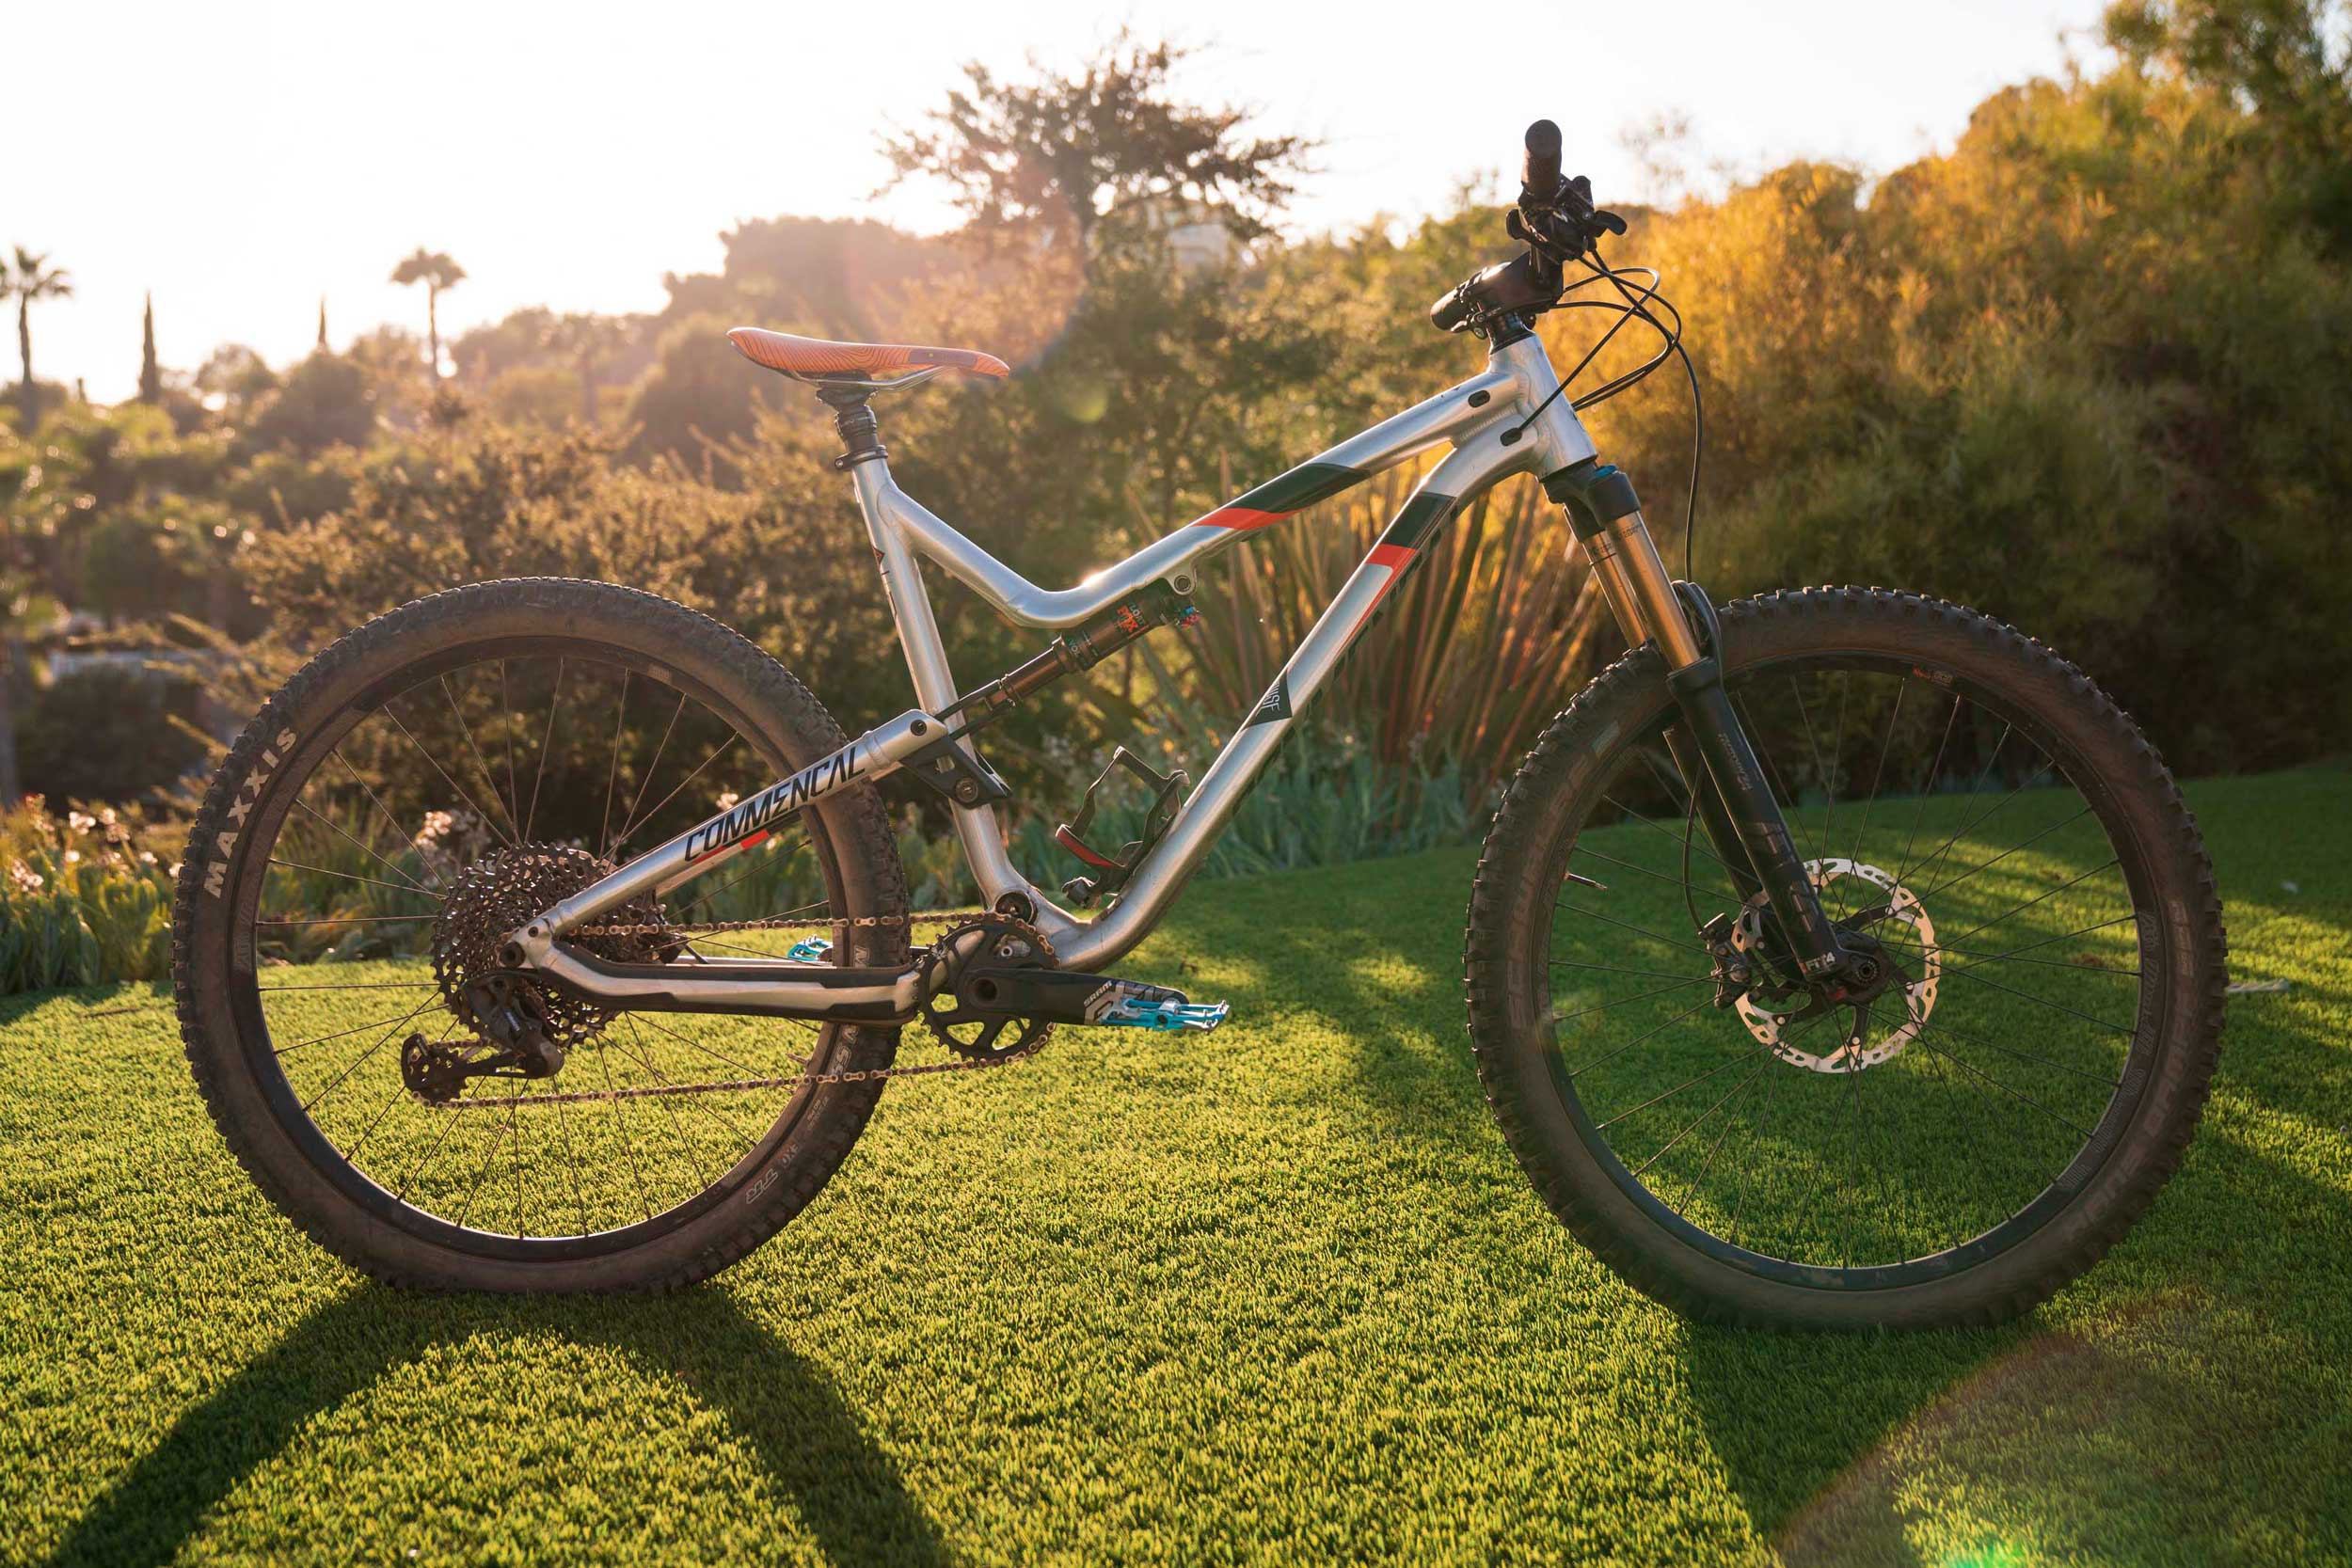 Review: Commencal Meta TRAIL V4.2 RACE